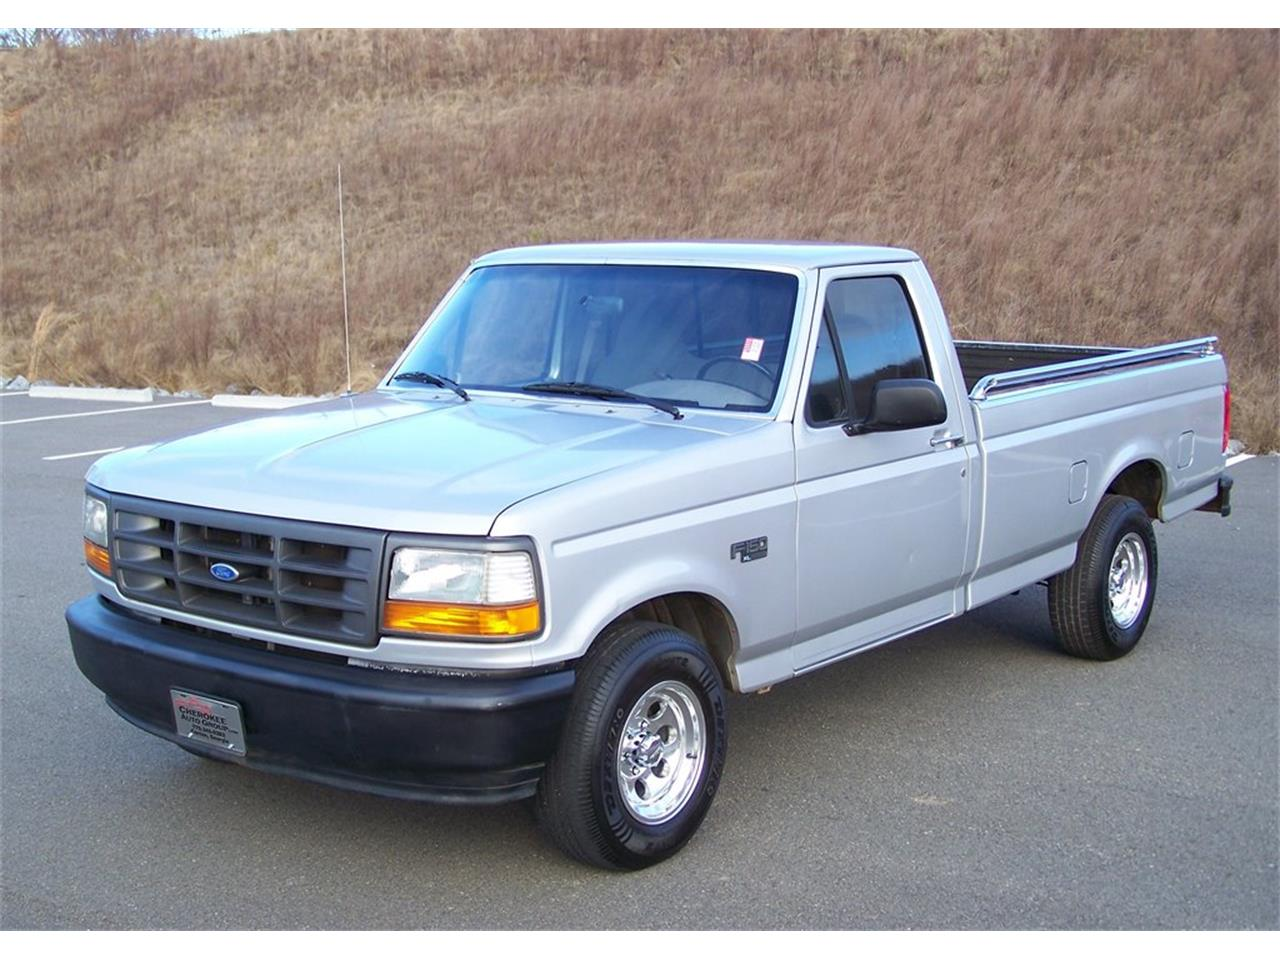 Large picture of 96 f150 mqhu